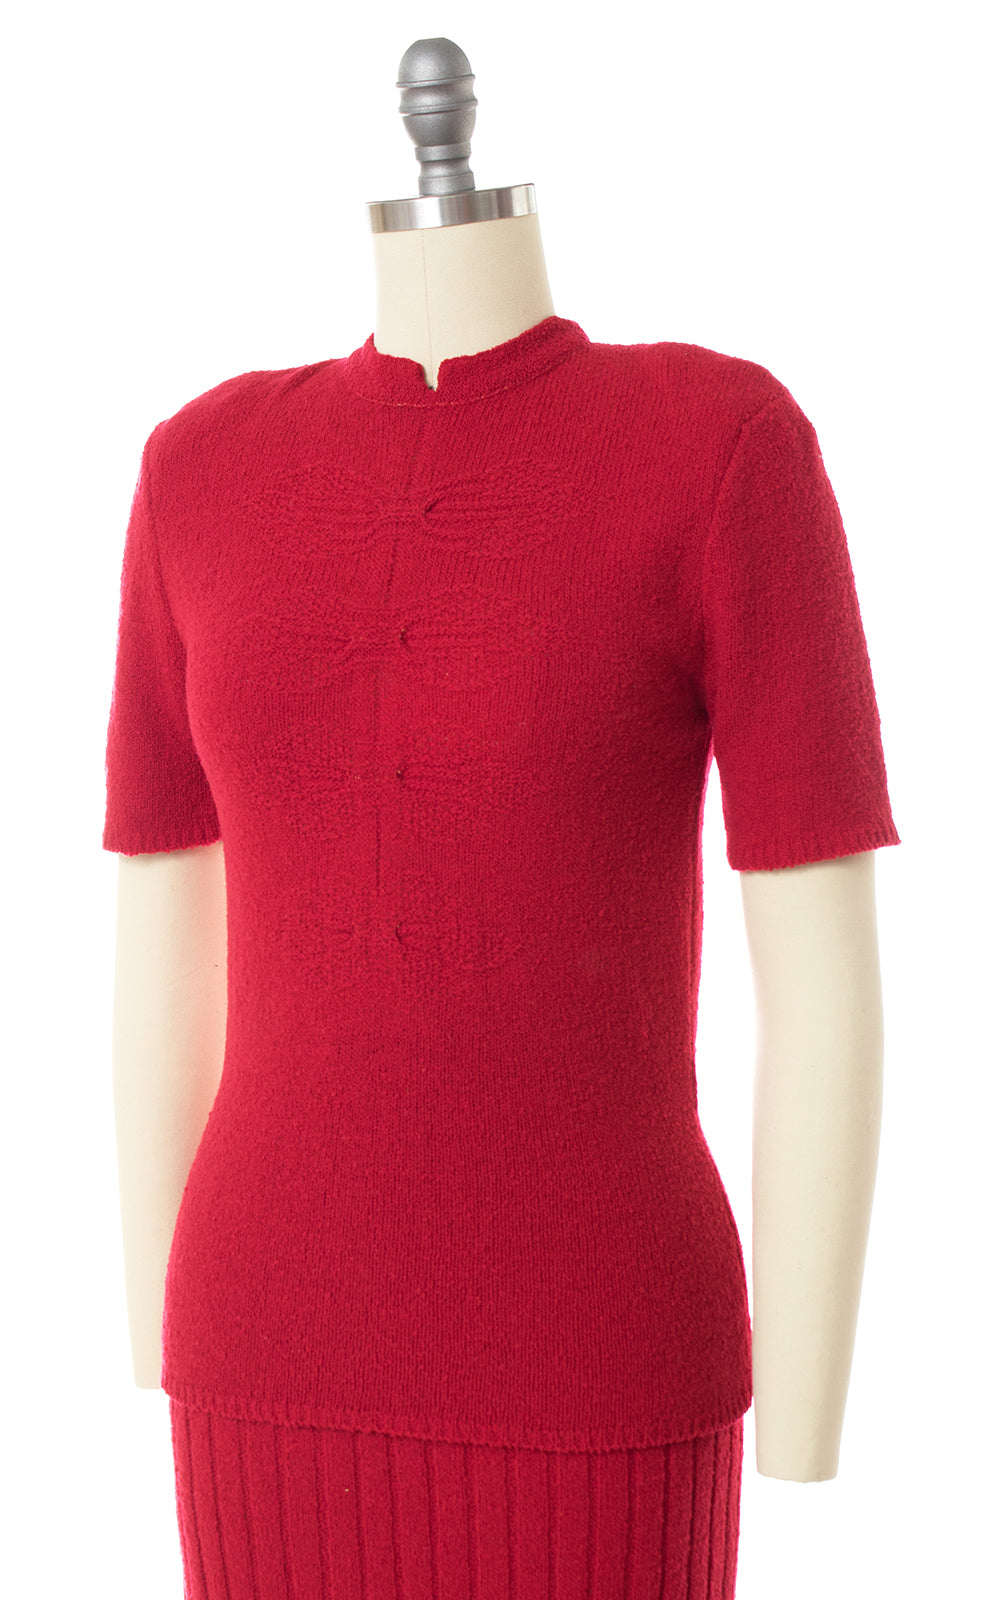 1940s 1950s Bright Red Knit Wool Sweater & Skirt Set